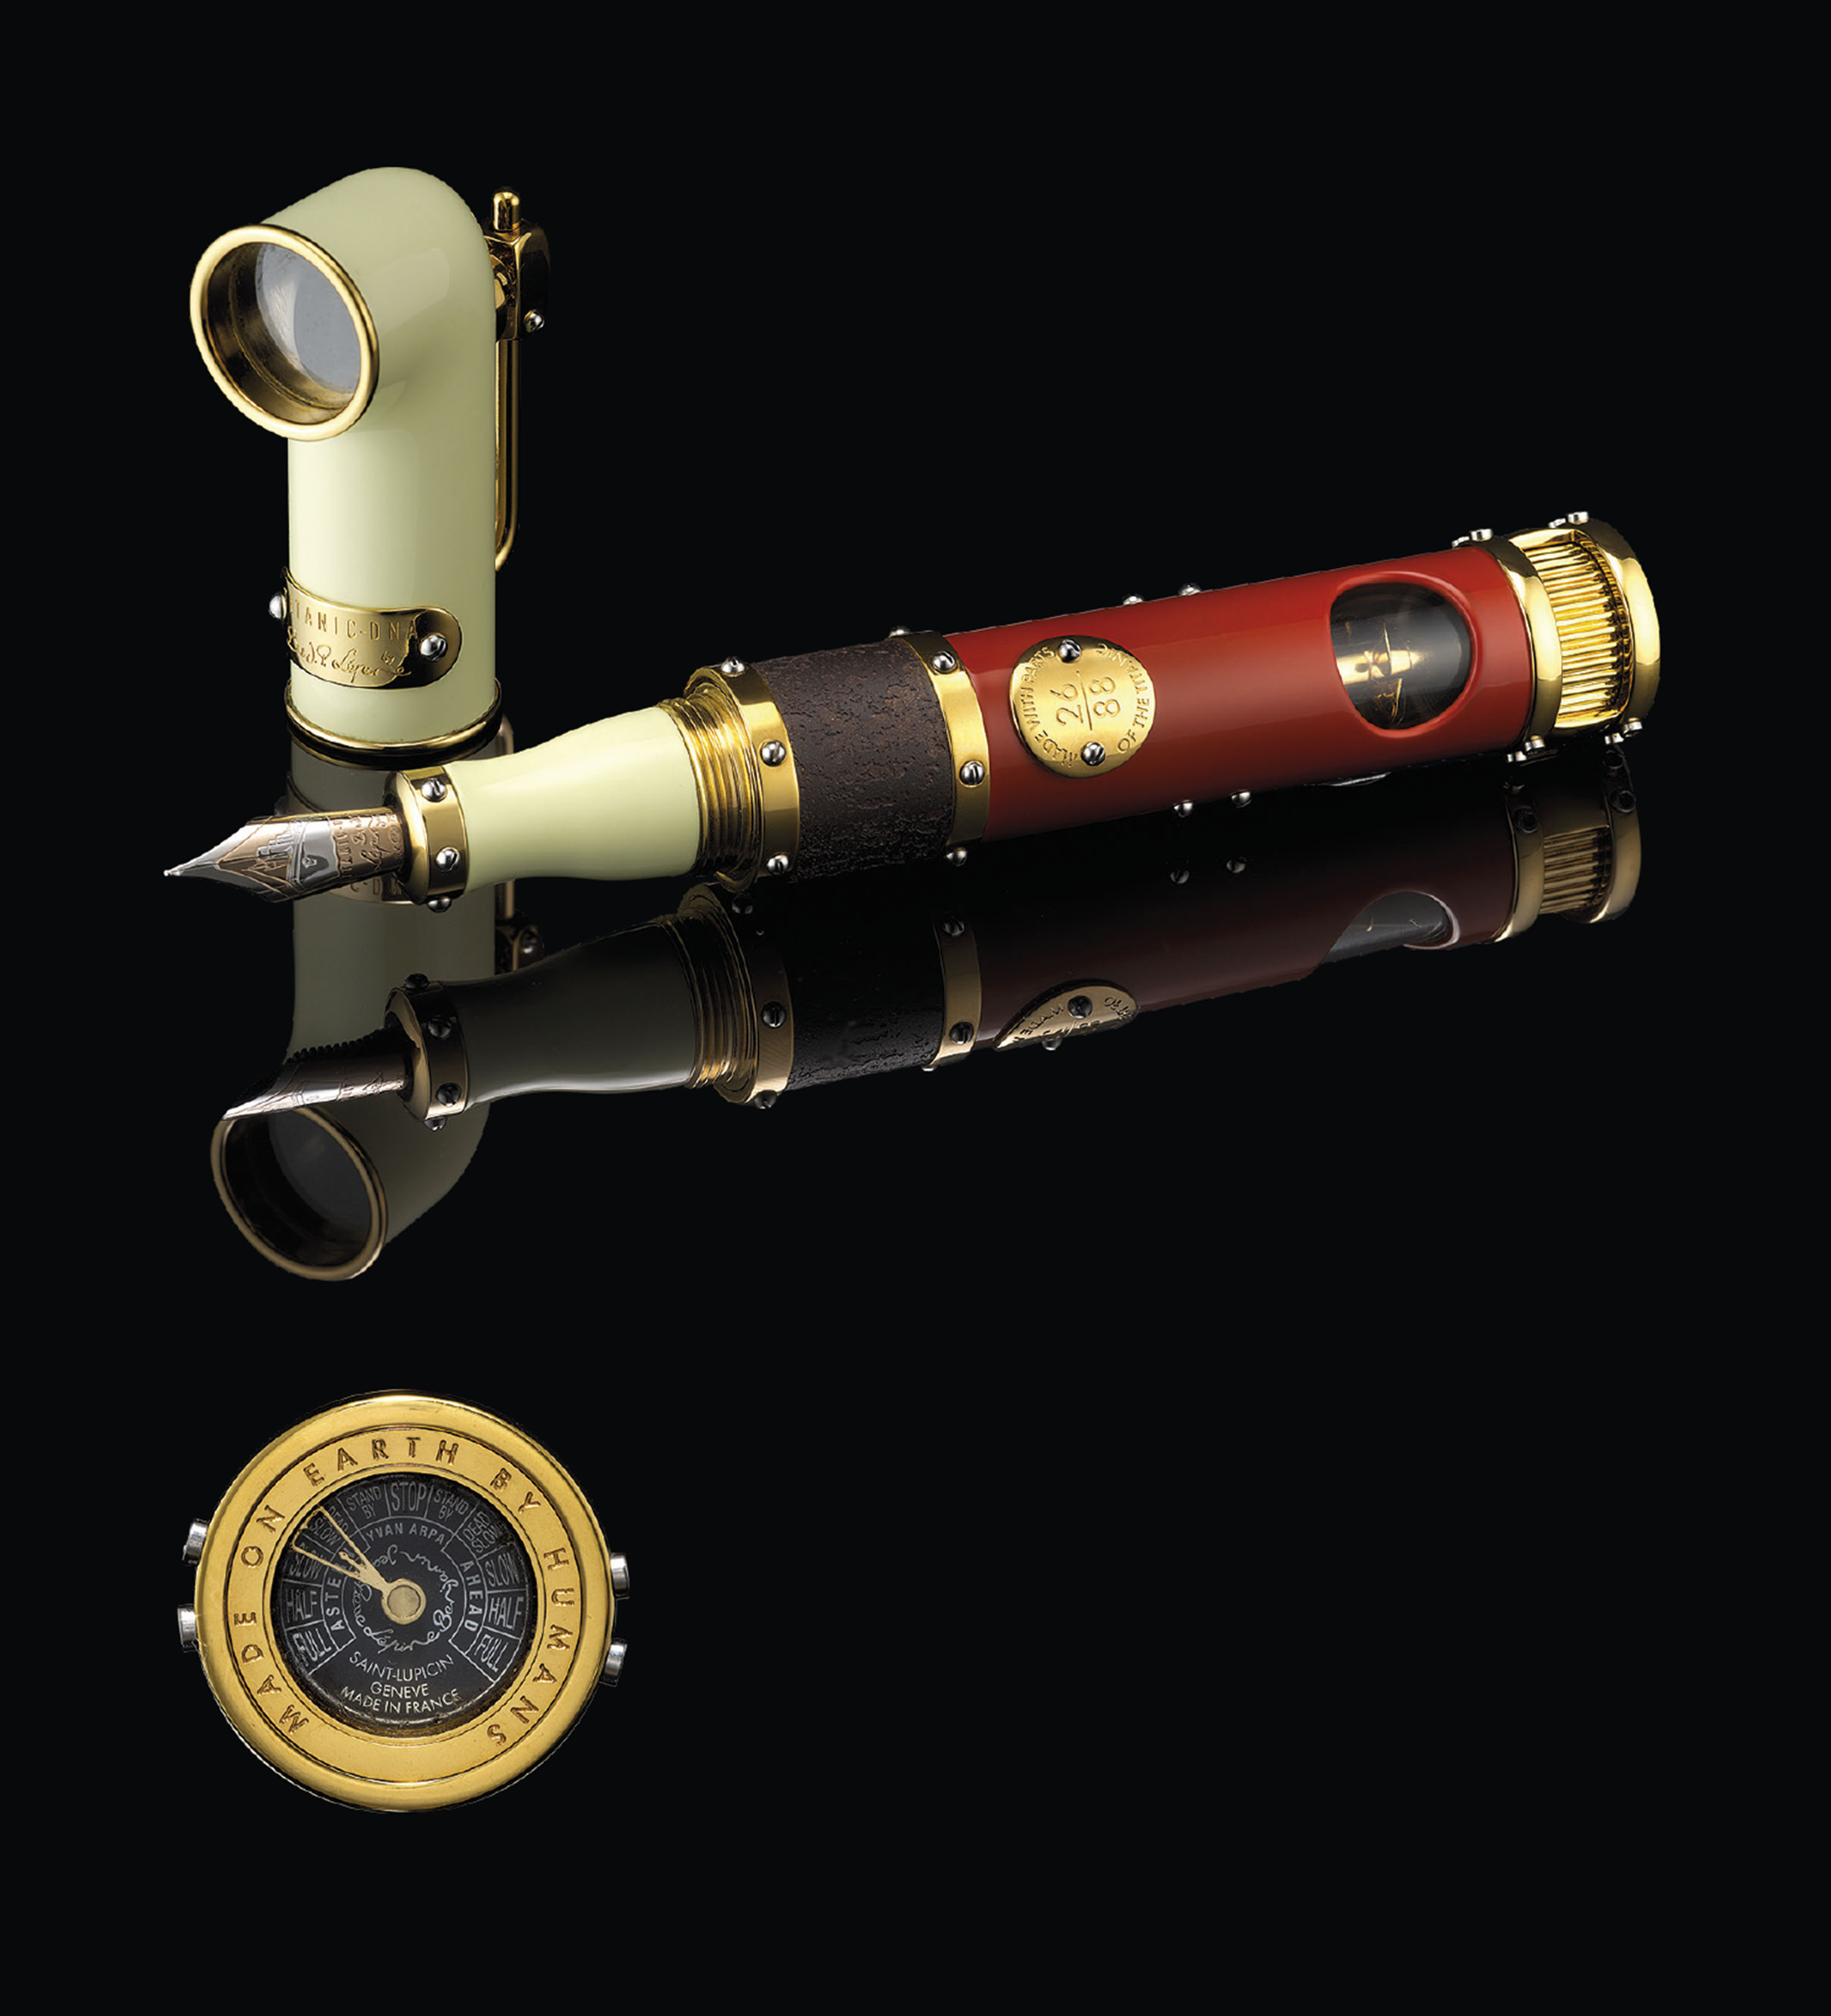 ROMAIN JEROME. A RARE STAINLESS STEEL AND GILT LIMITED EDITION FOUNTAIN PEN